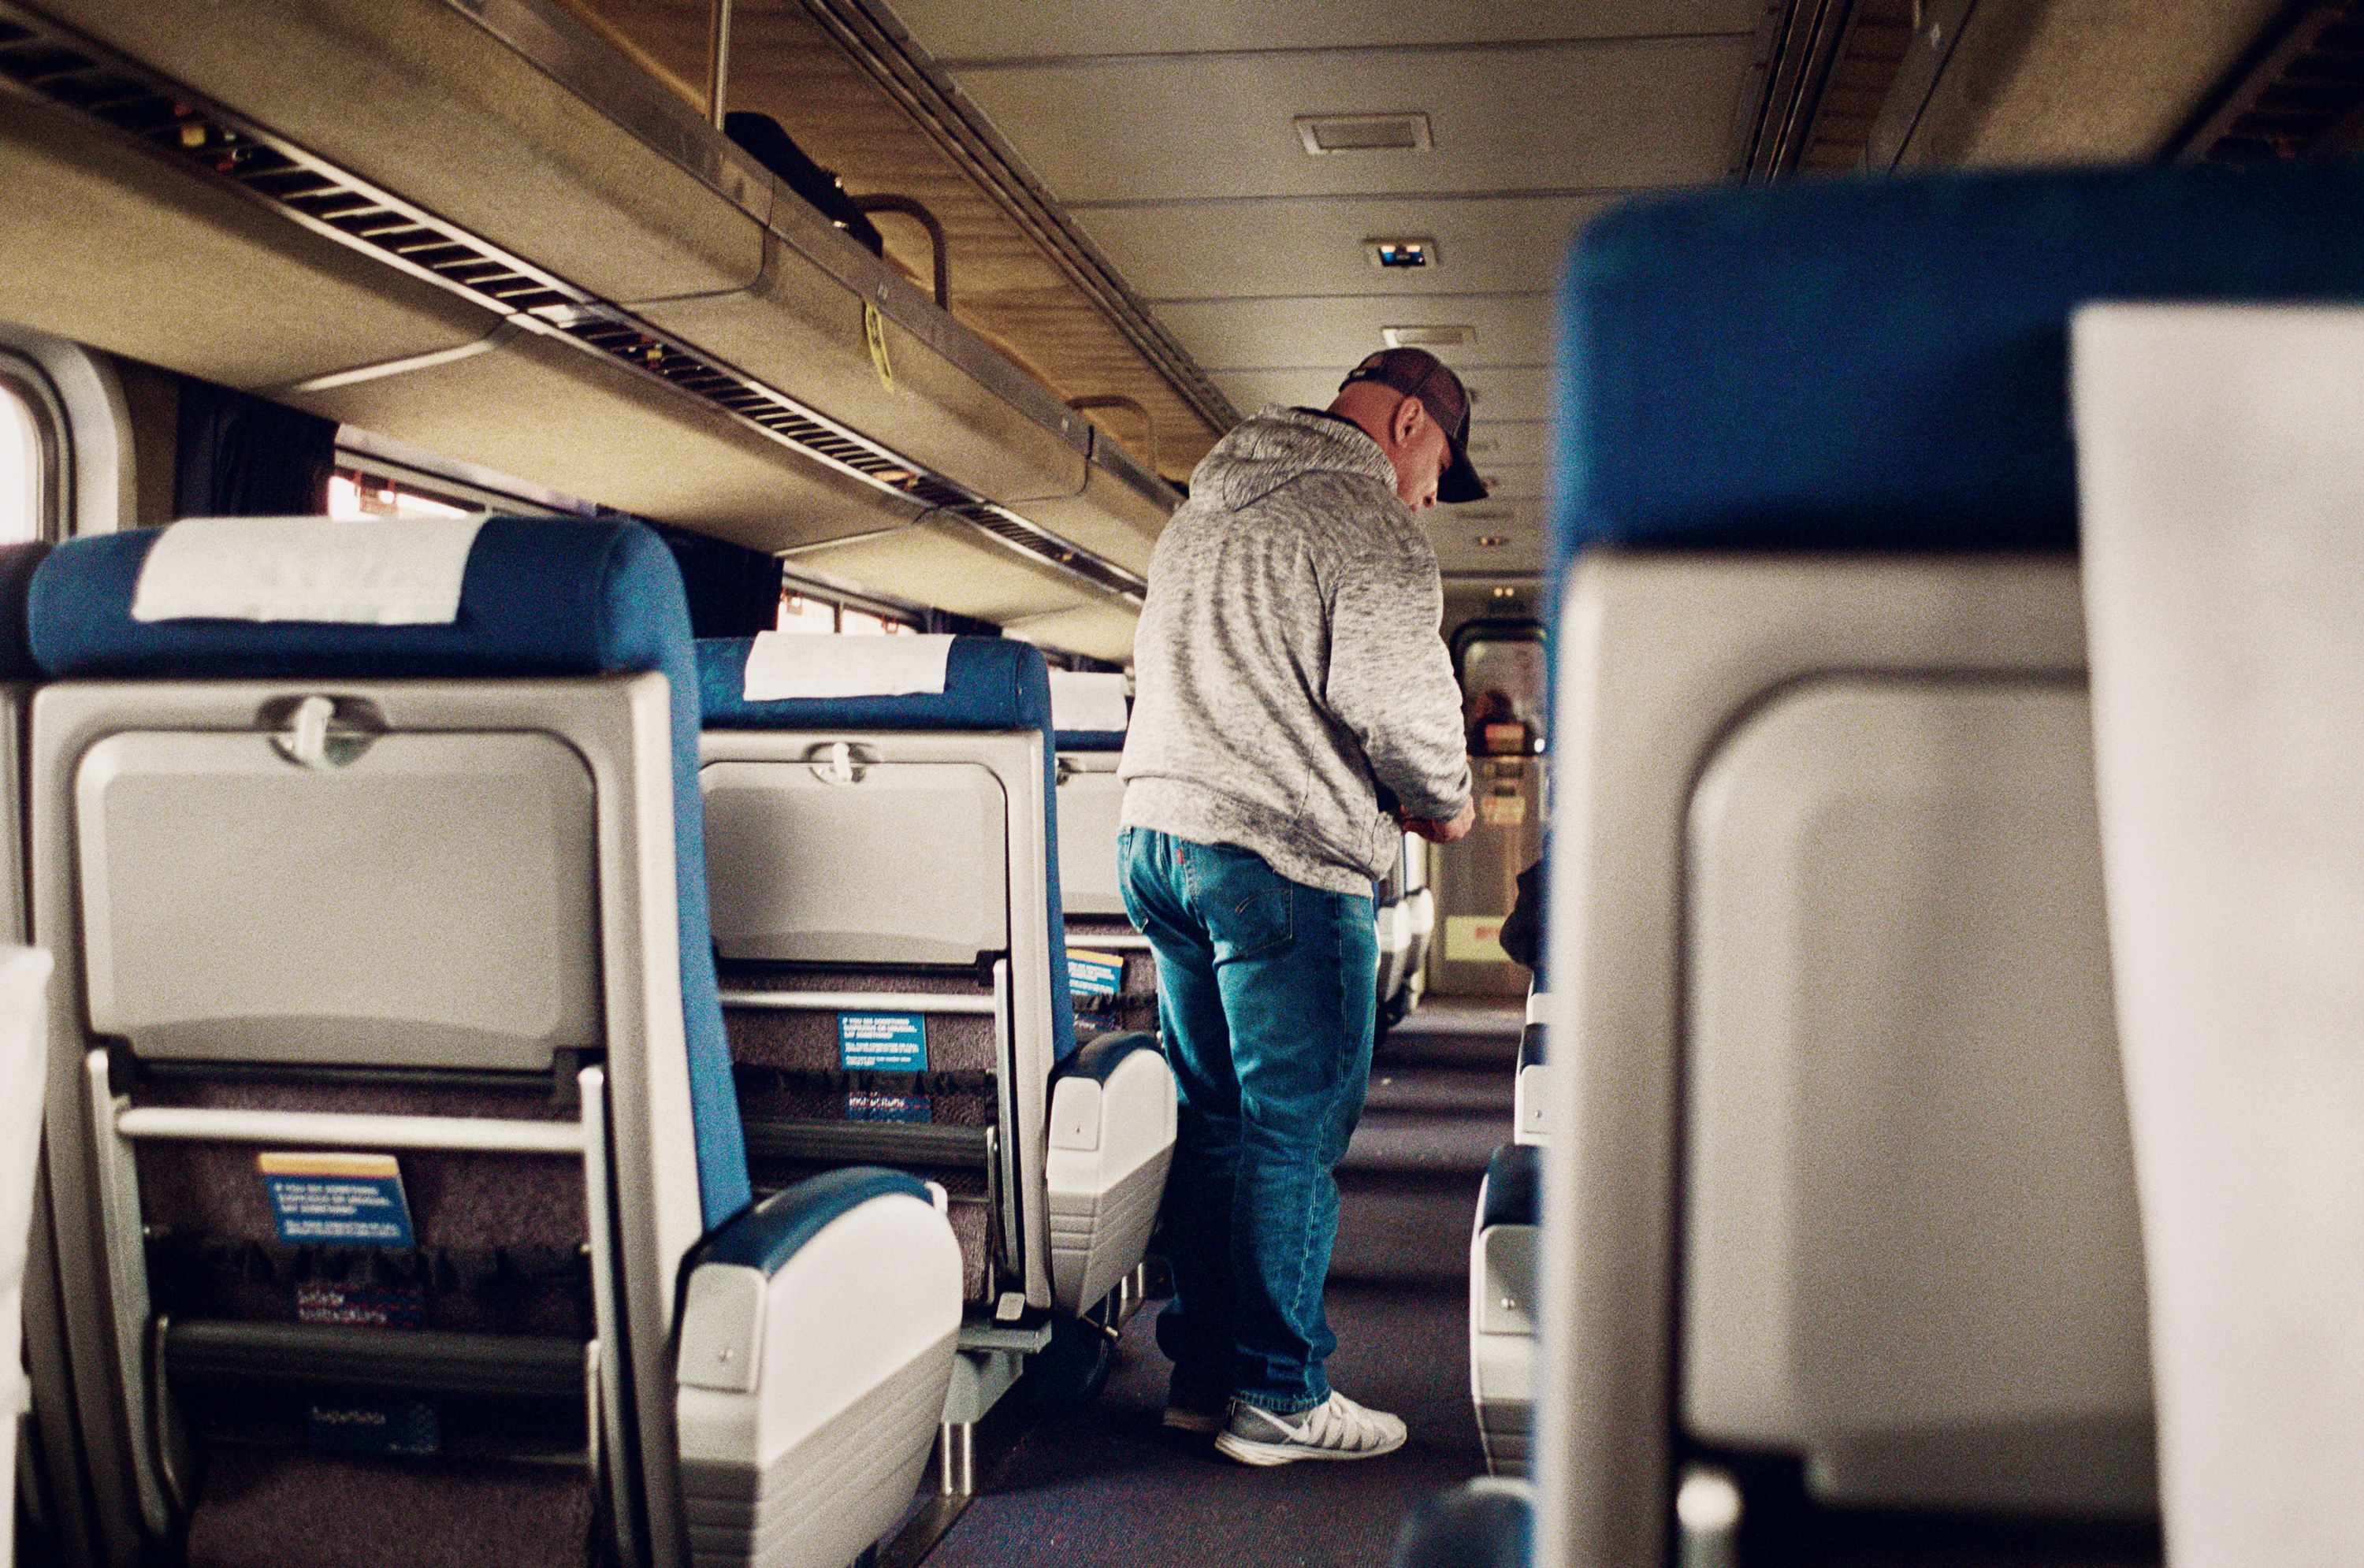 DEA Agent Perry boards the Southwest Chief in ABQ to question Passengers and search luggage.